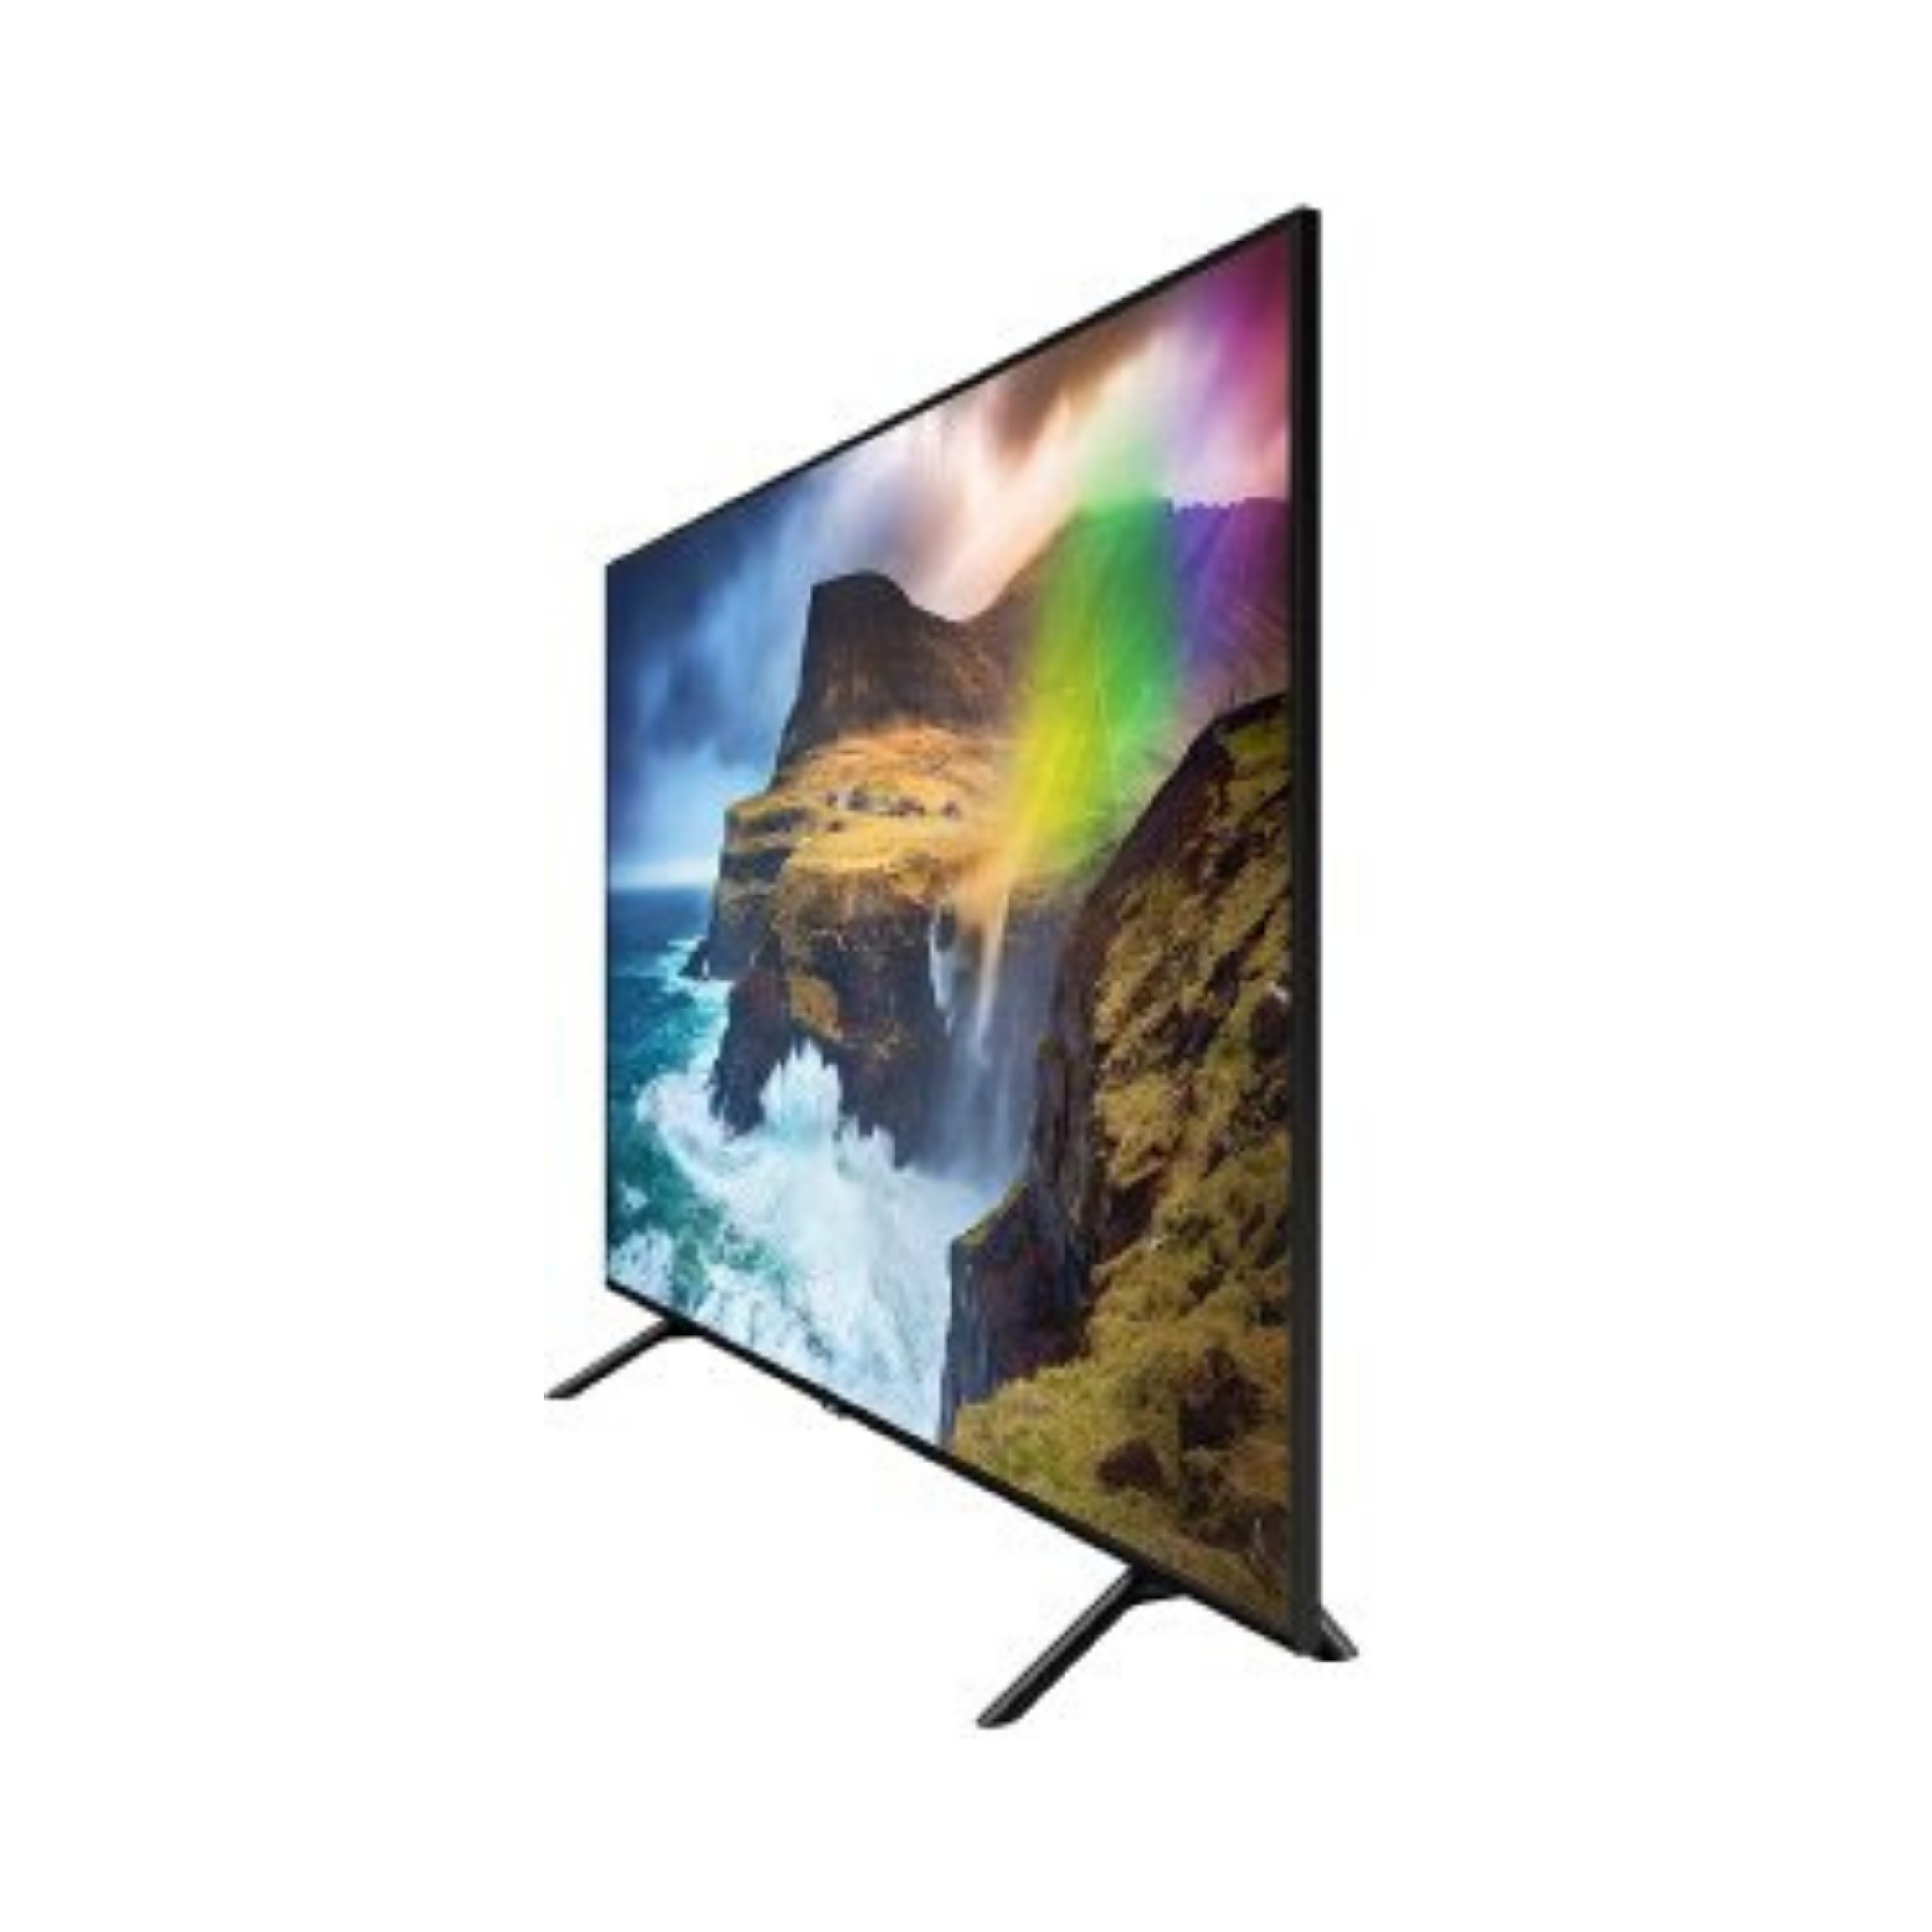 Samsung 138 cm (55 Inches) 4K QLED LED Smart TV QA55Q70RAKXXL (Black)